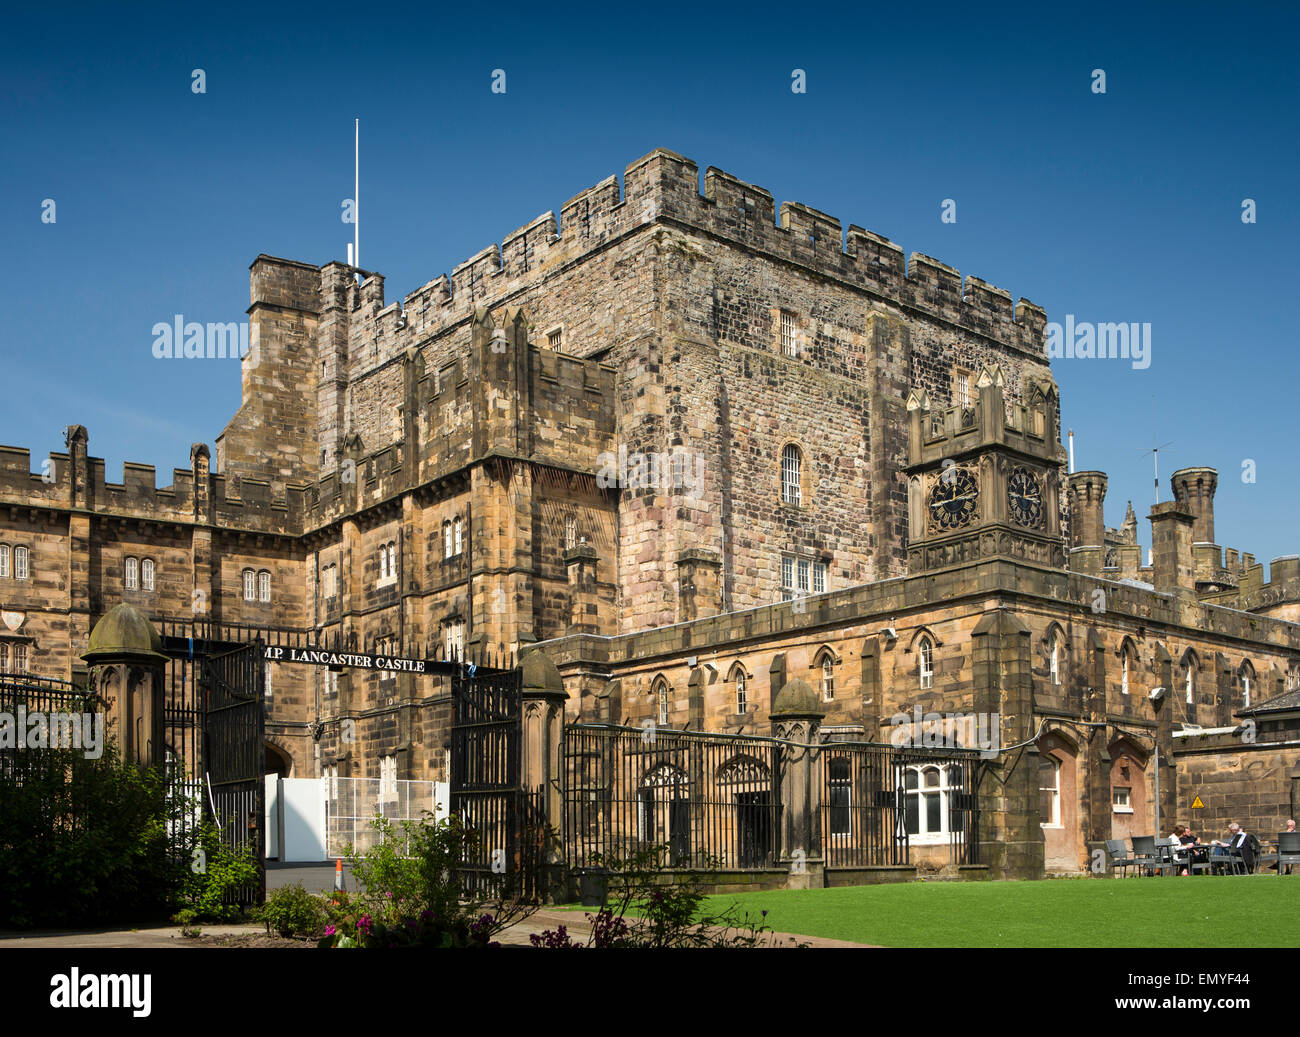 UK, England, Lancashire, Lancaster, Castle Park, Lancaster Castle, keep from inner courtyard - Stock Image